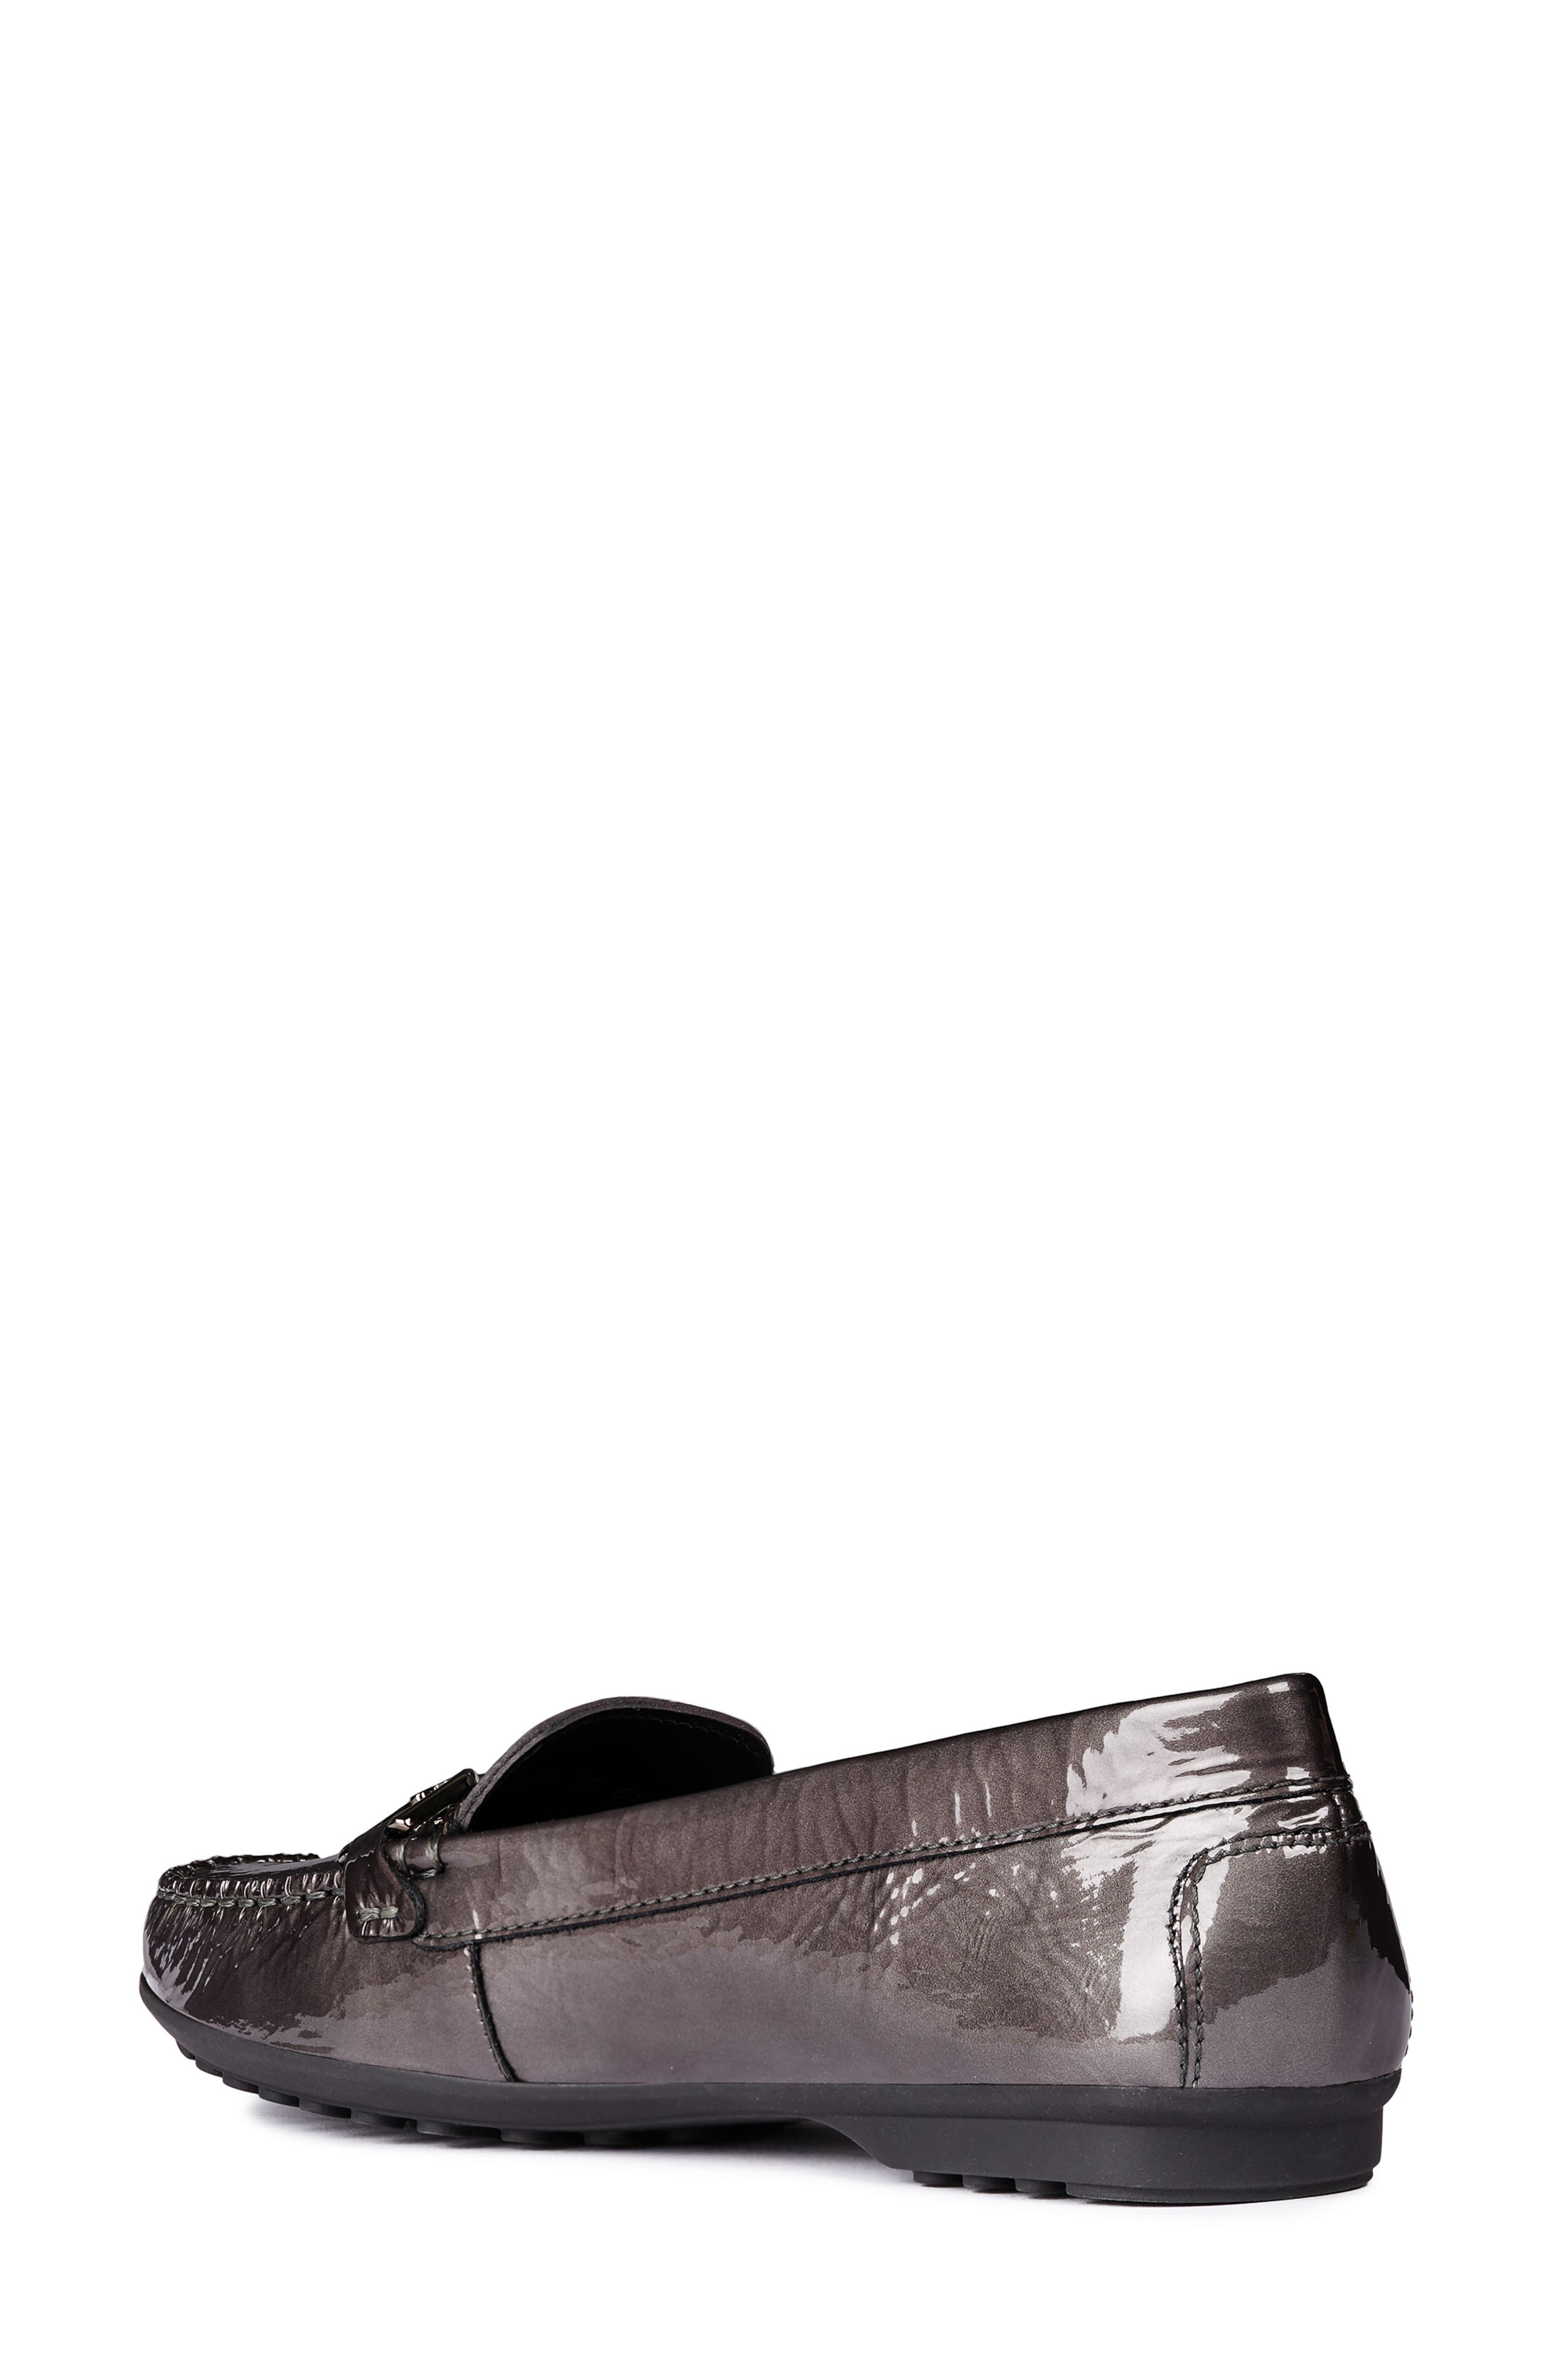 GEOX, Elidia Loafer, Alternate thumbnail 2, color, DARK GREY LEATHER